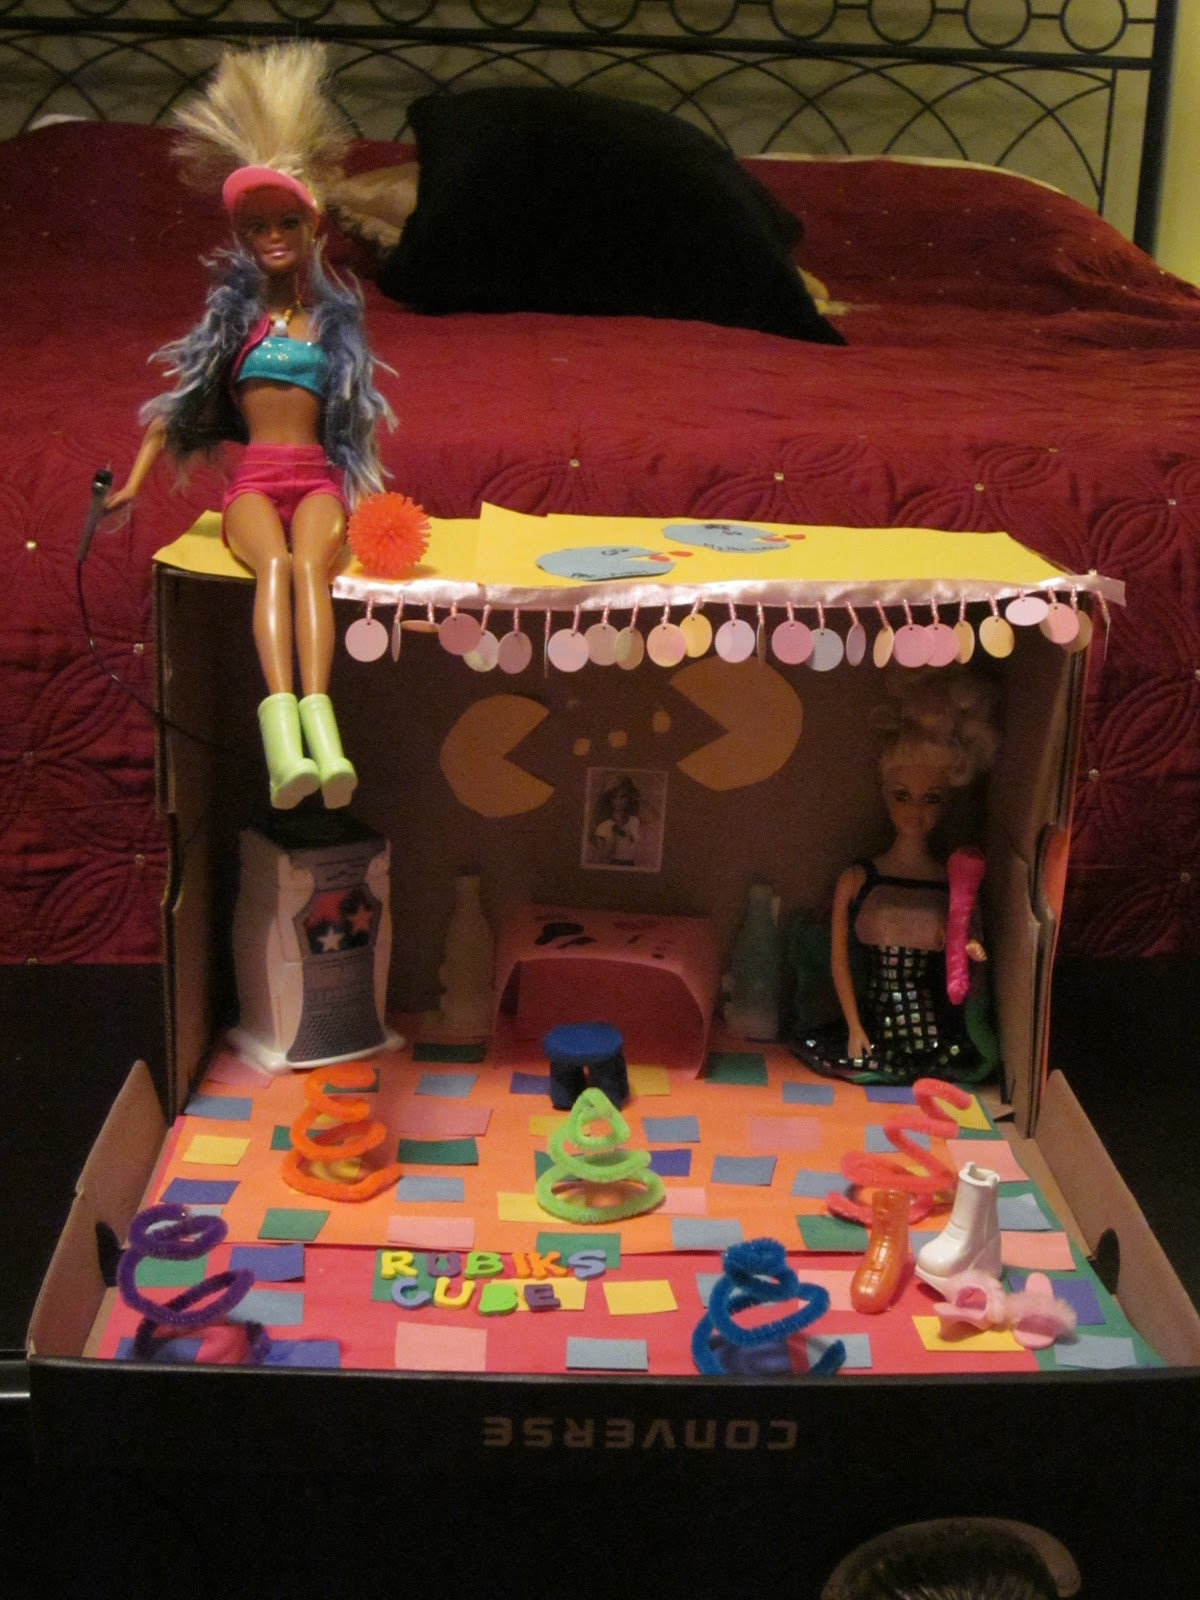 Nicki elson 39 s not so deep thoughts barbie 39 s 80s dreamhouse for 80s deep house